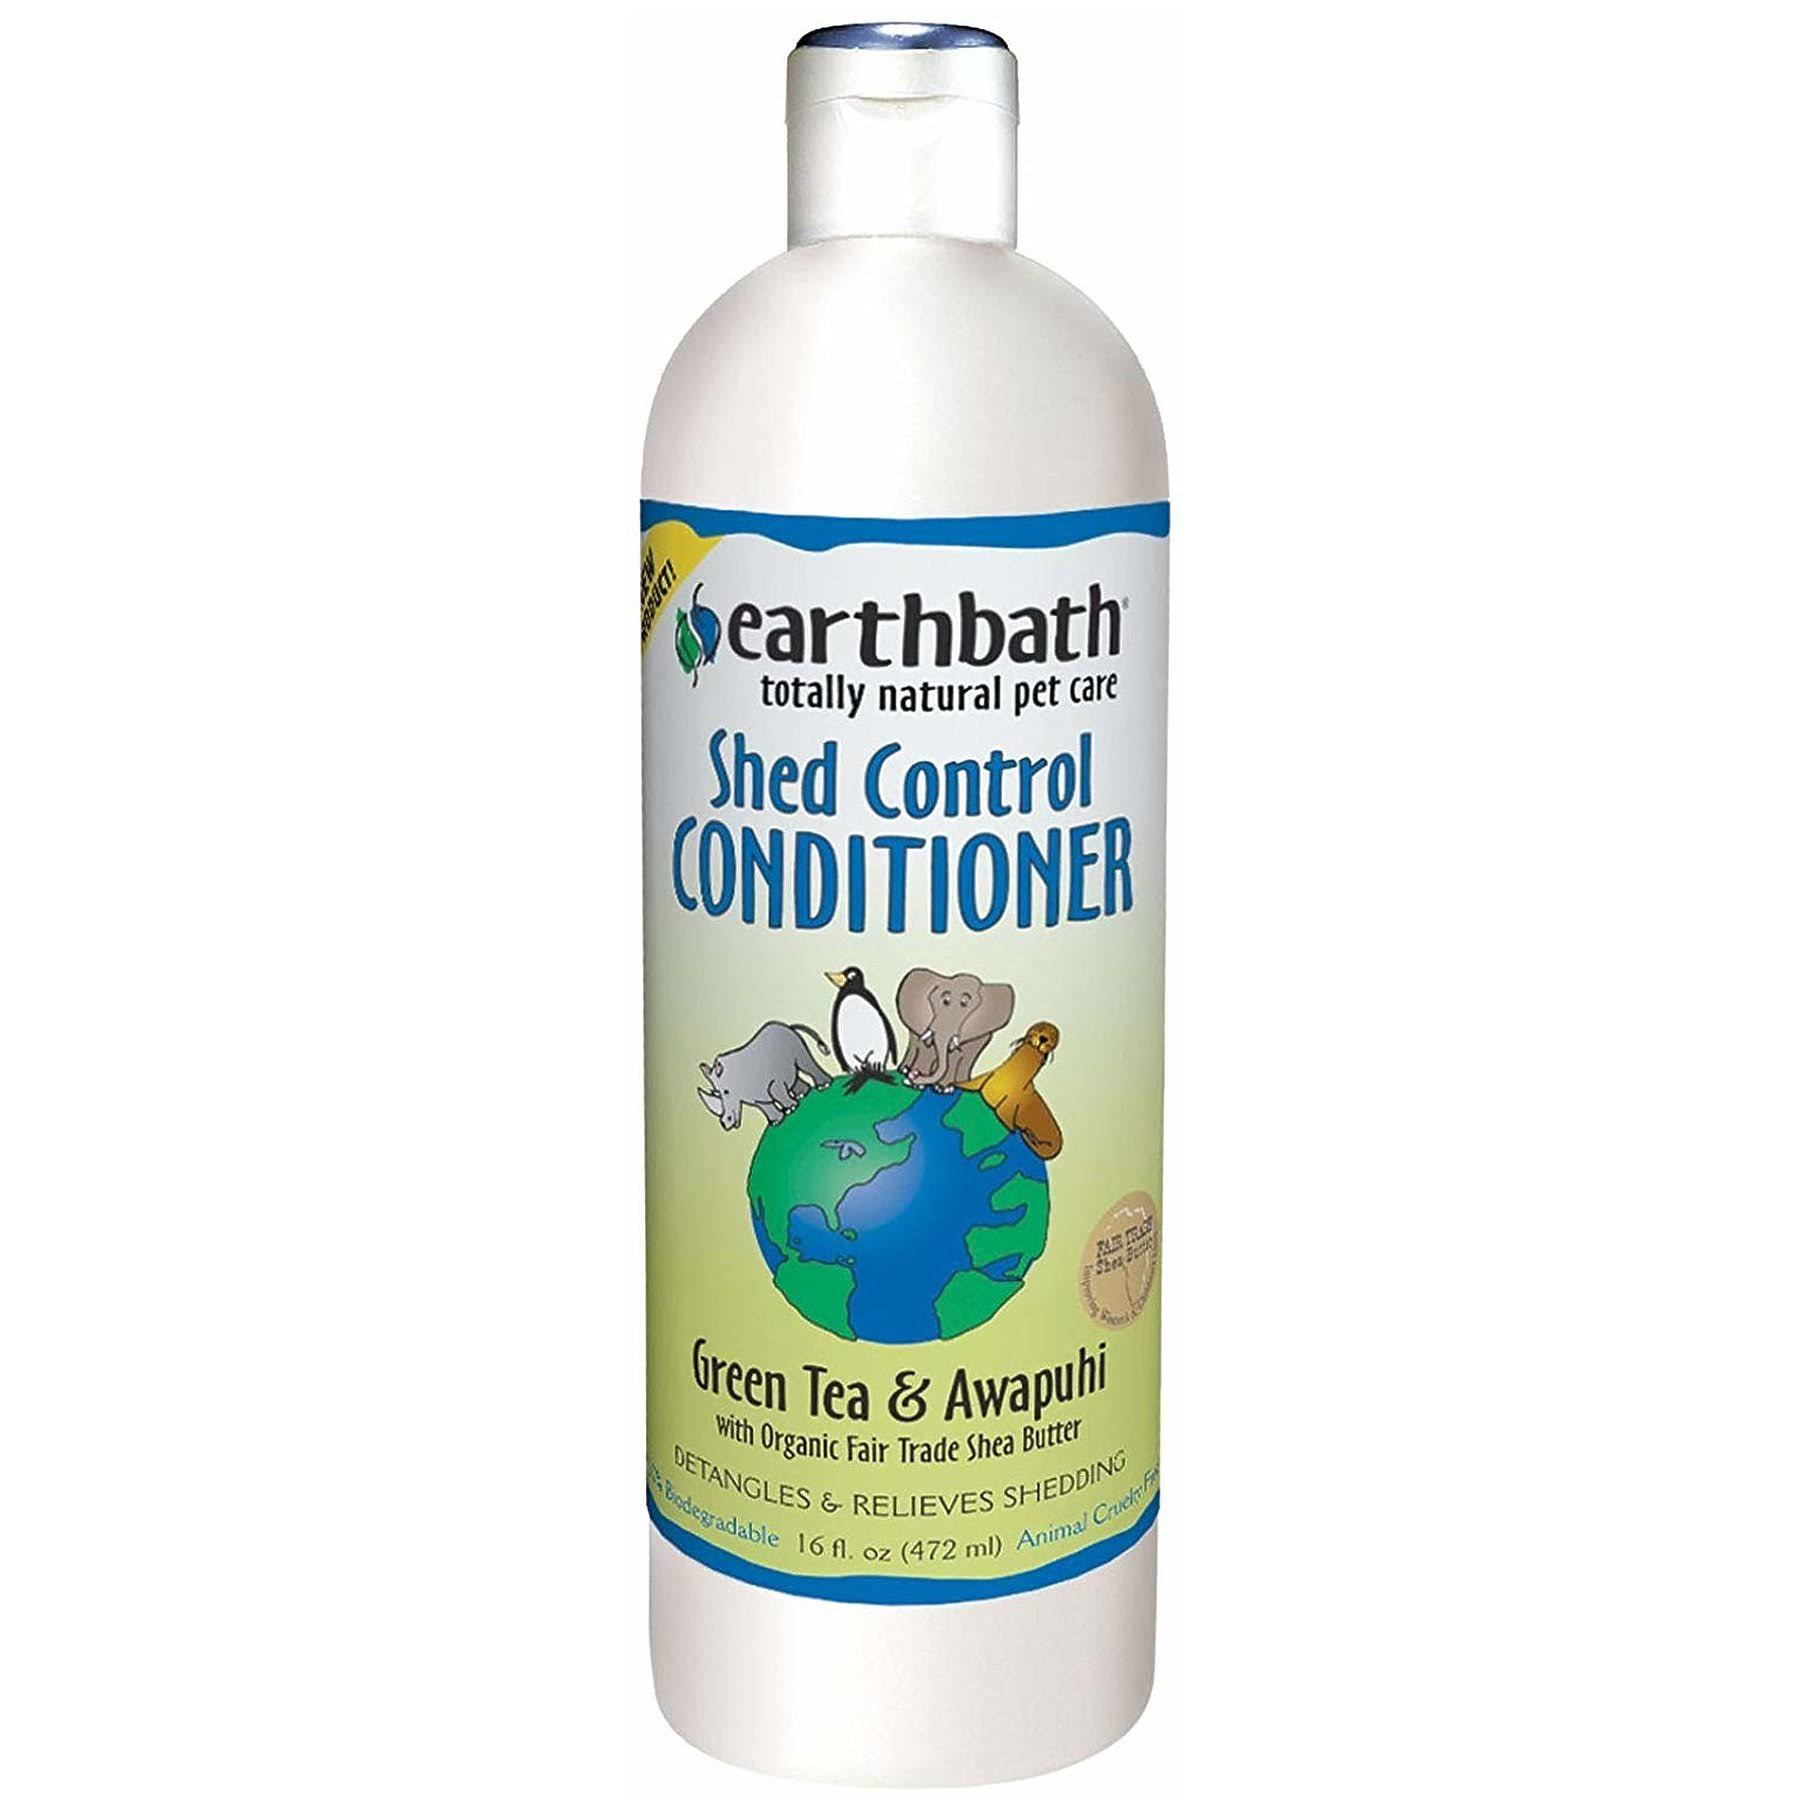 Earthbath Shed Control Conditioner, Green Tea & Awapuhi 16 oz